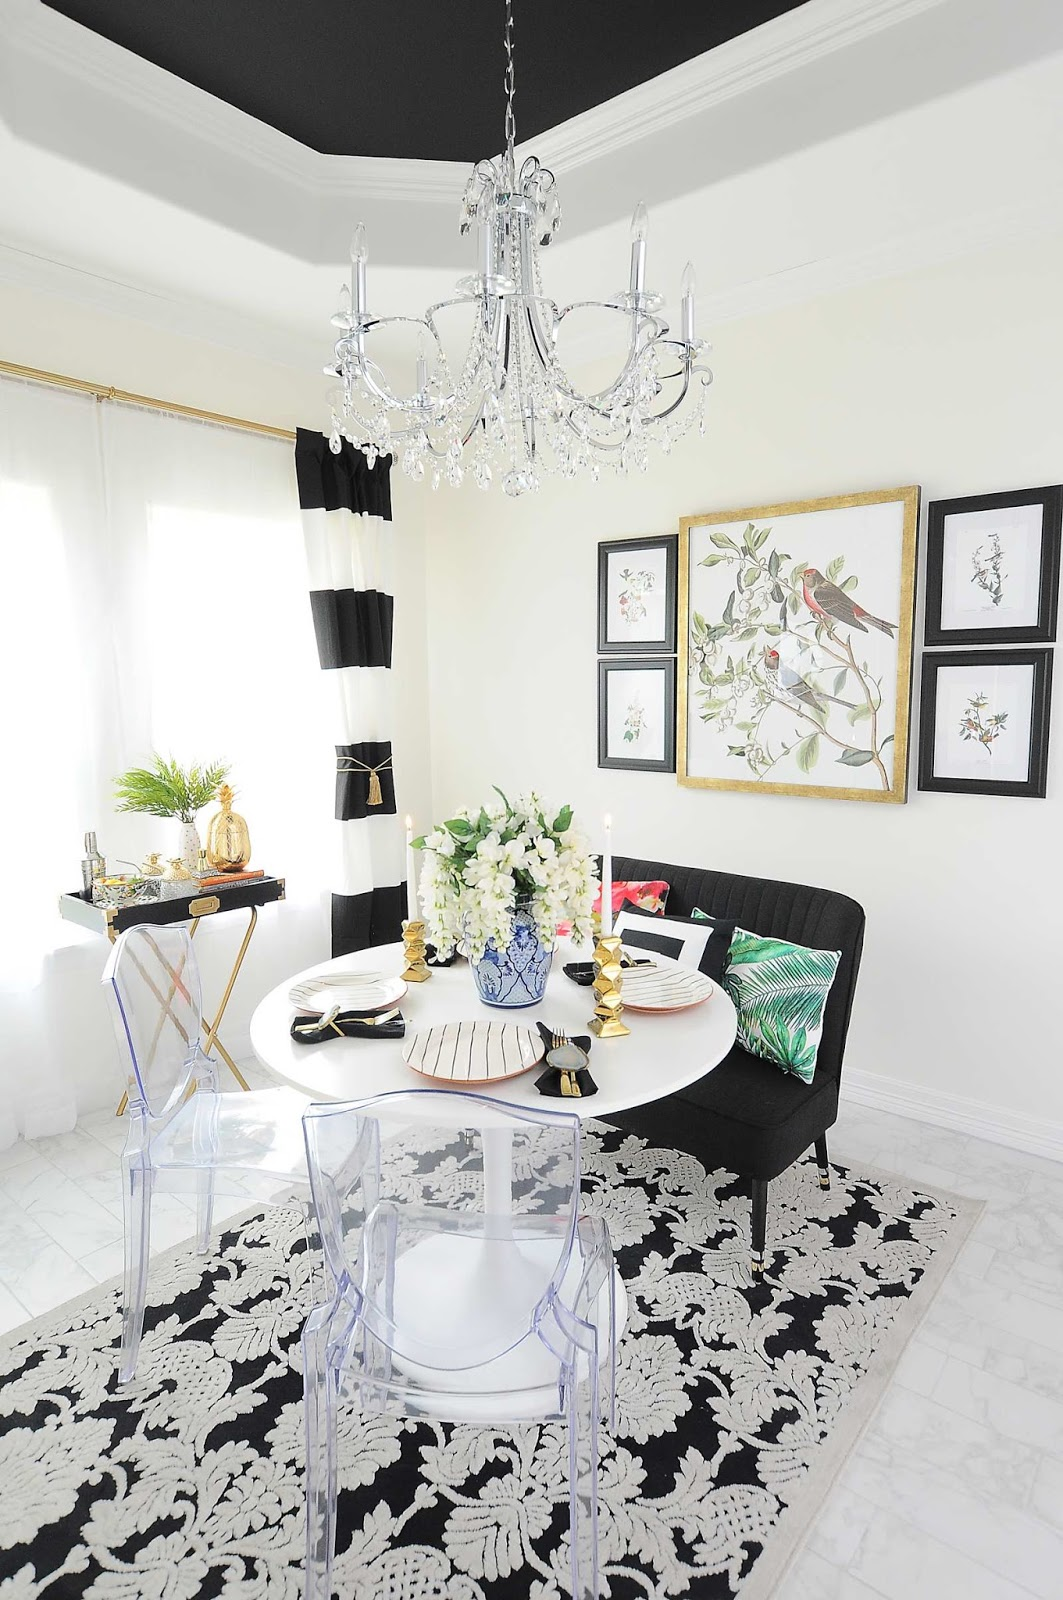 A small dining space gets a makeover using black and white striped curtains, audubon printables, chinoiserie accents and lots of florals and botanicals.